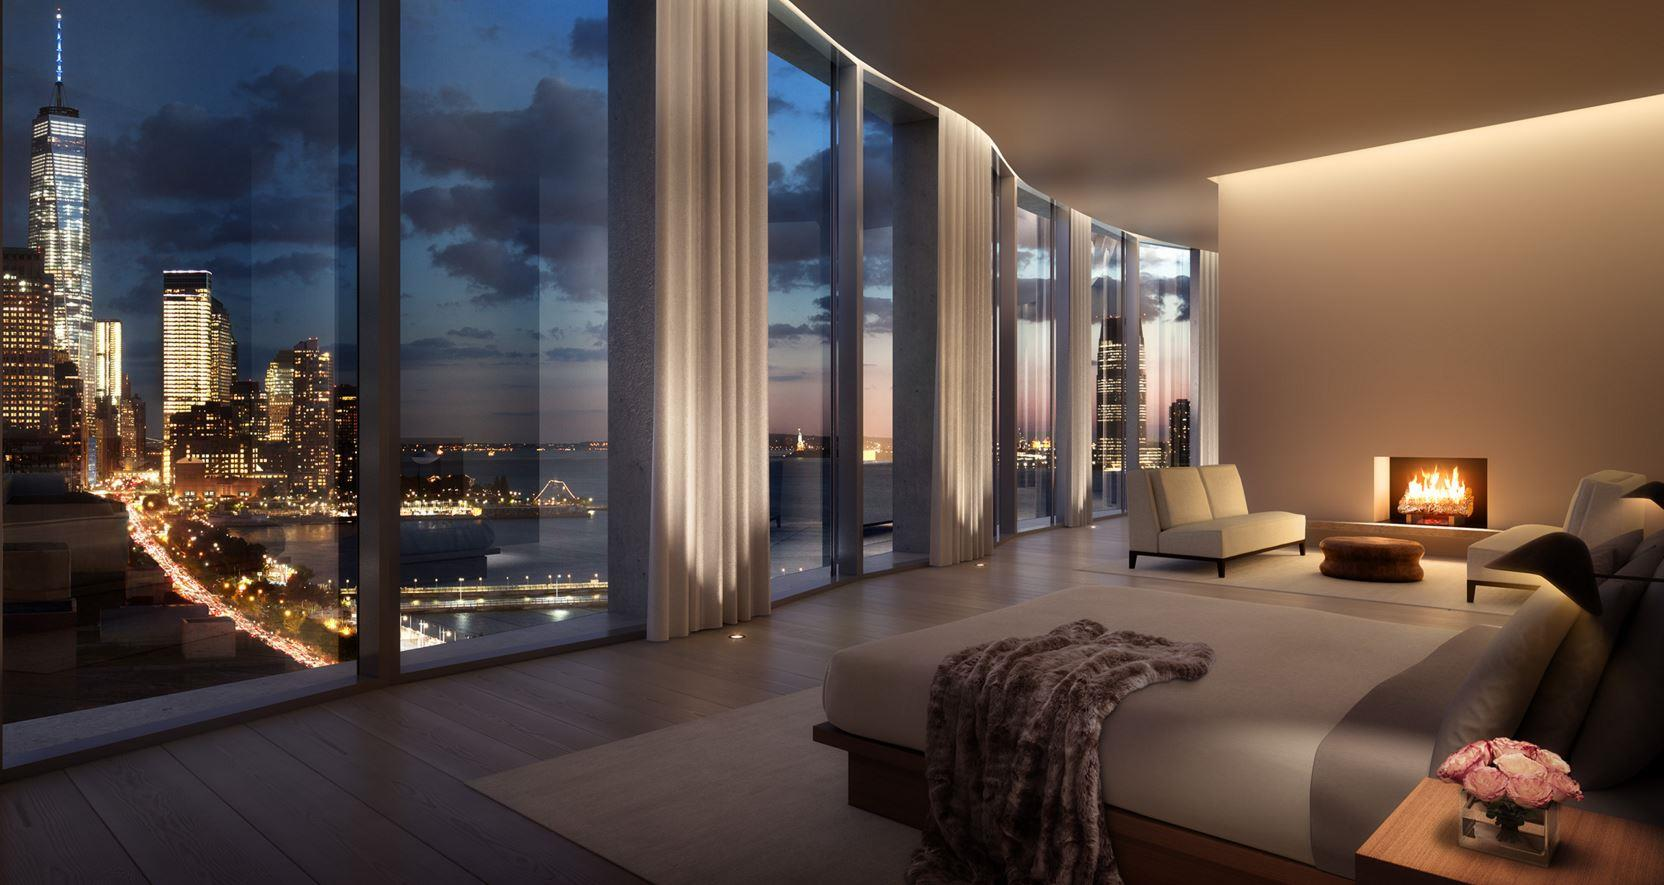 More Views Inside Herzog De Meuron S West Village Condo